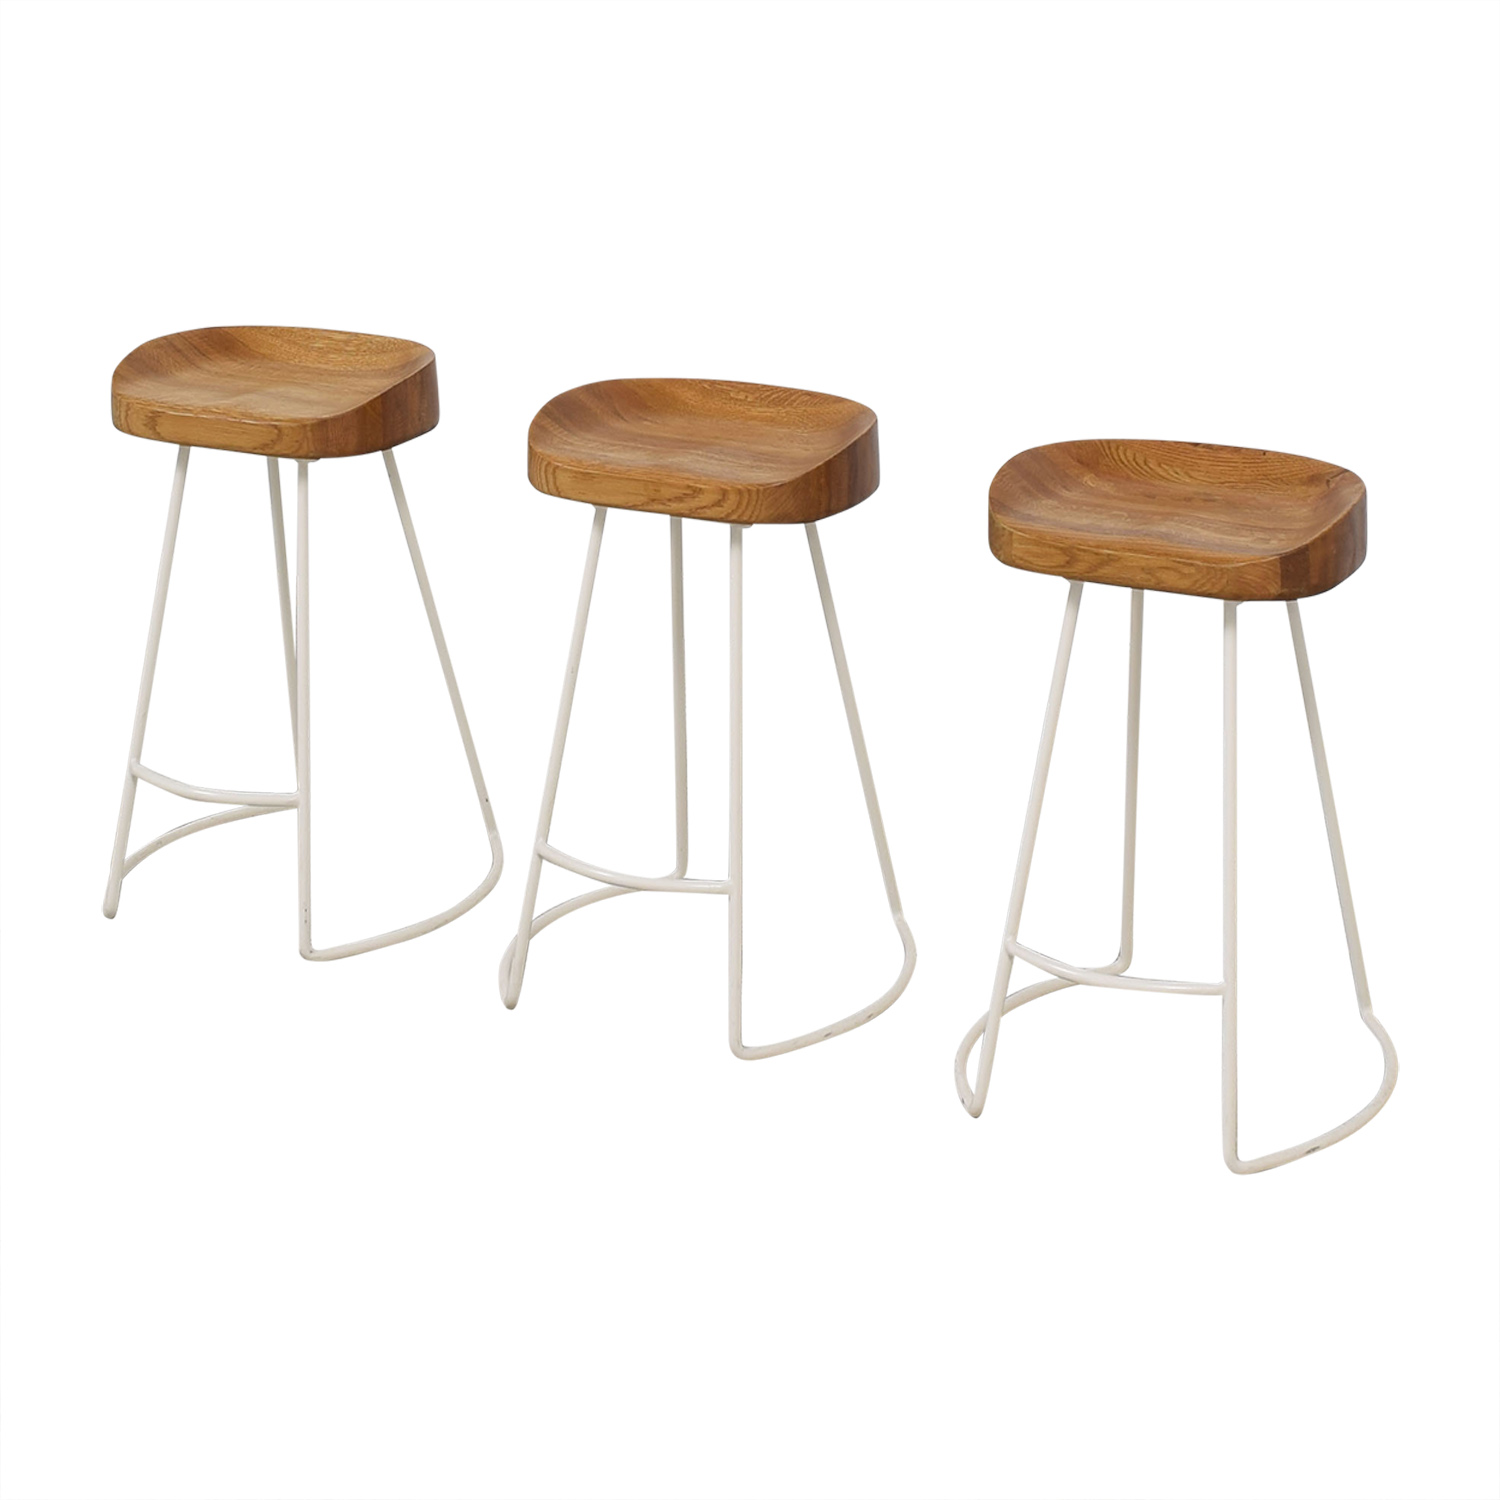 Wisteria Wisteria Natural Smart and Sleek Counter Stools Chairs